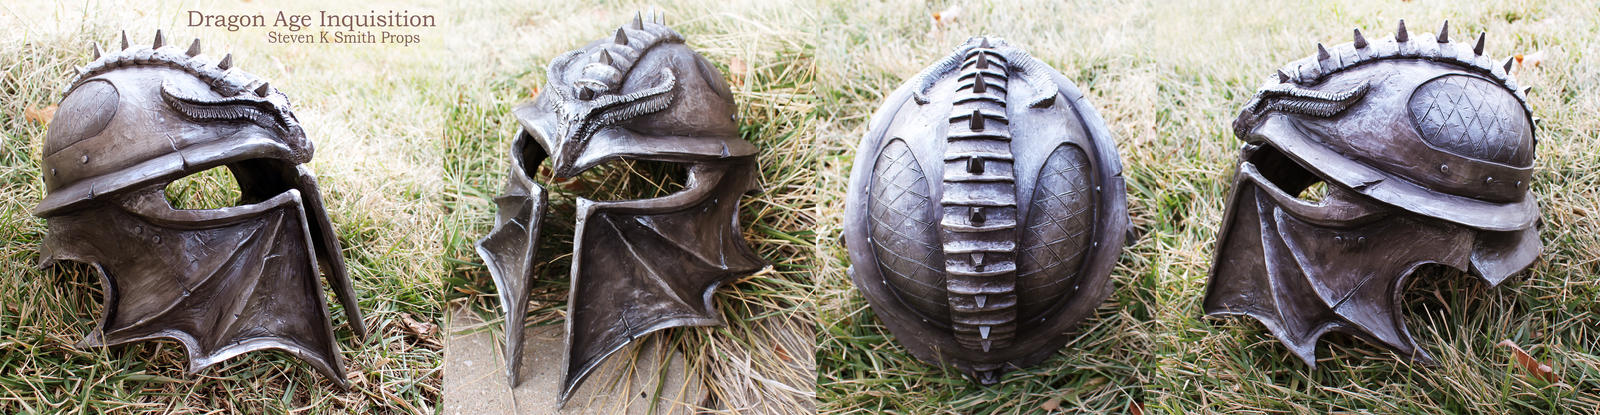 Preferred Dragon Age Inquisition Helmet - Full View by SKSProps on DeviantArt OQ59